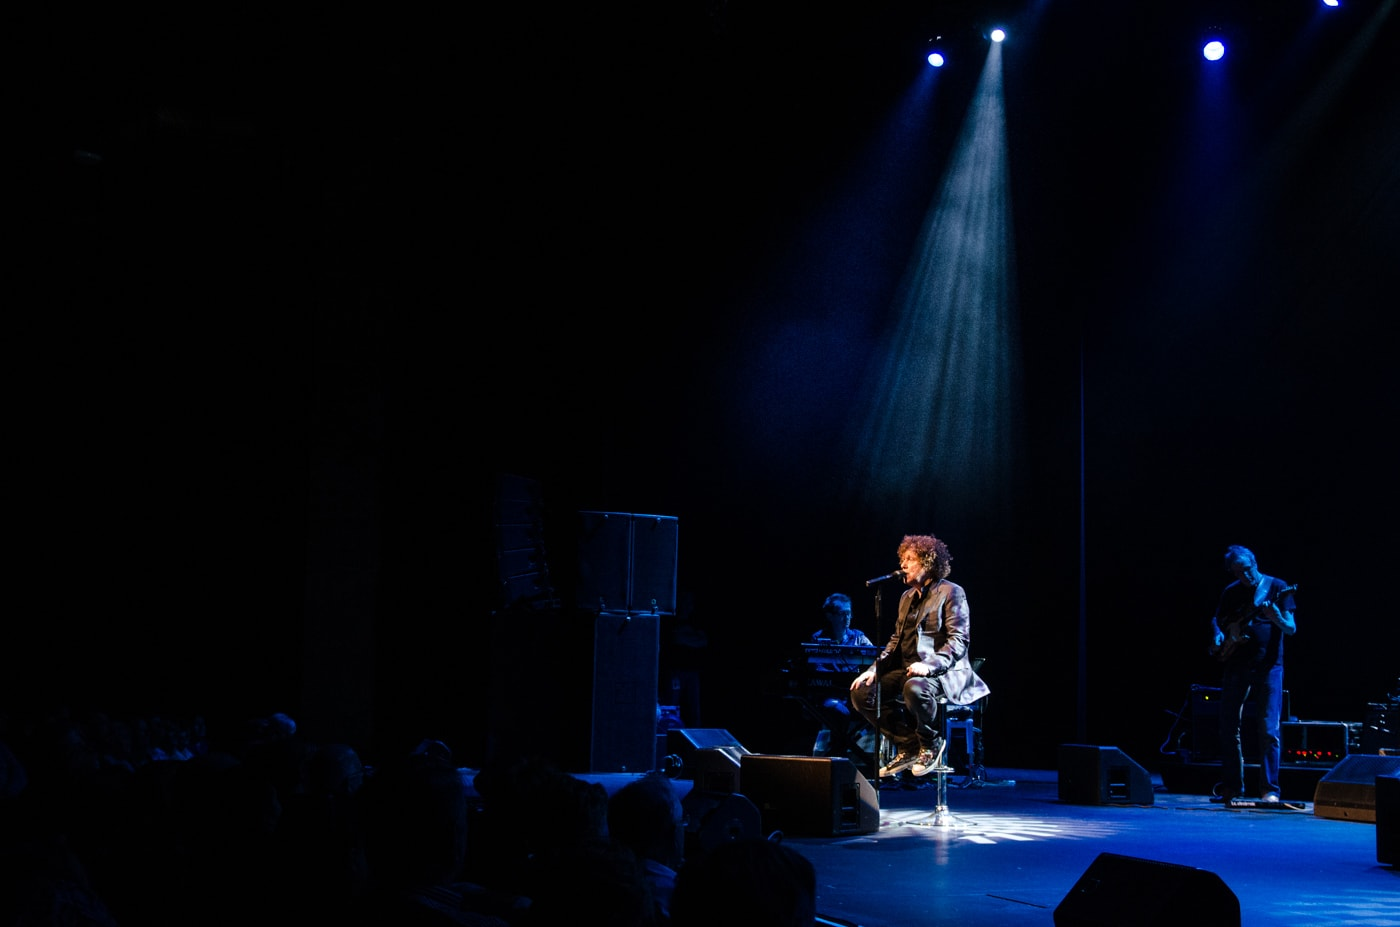 Leo Sayer at Bord Gais Energy Theatre by Sean Smyth (16-10-15) (81 of 129)